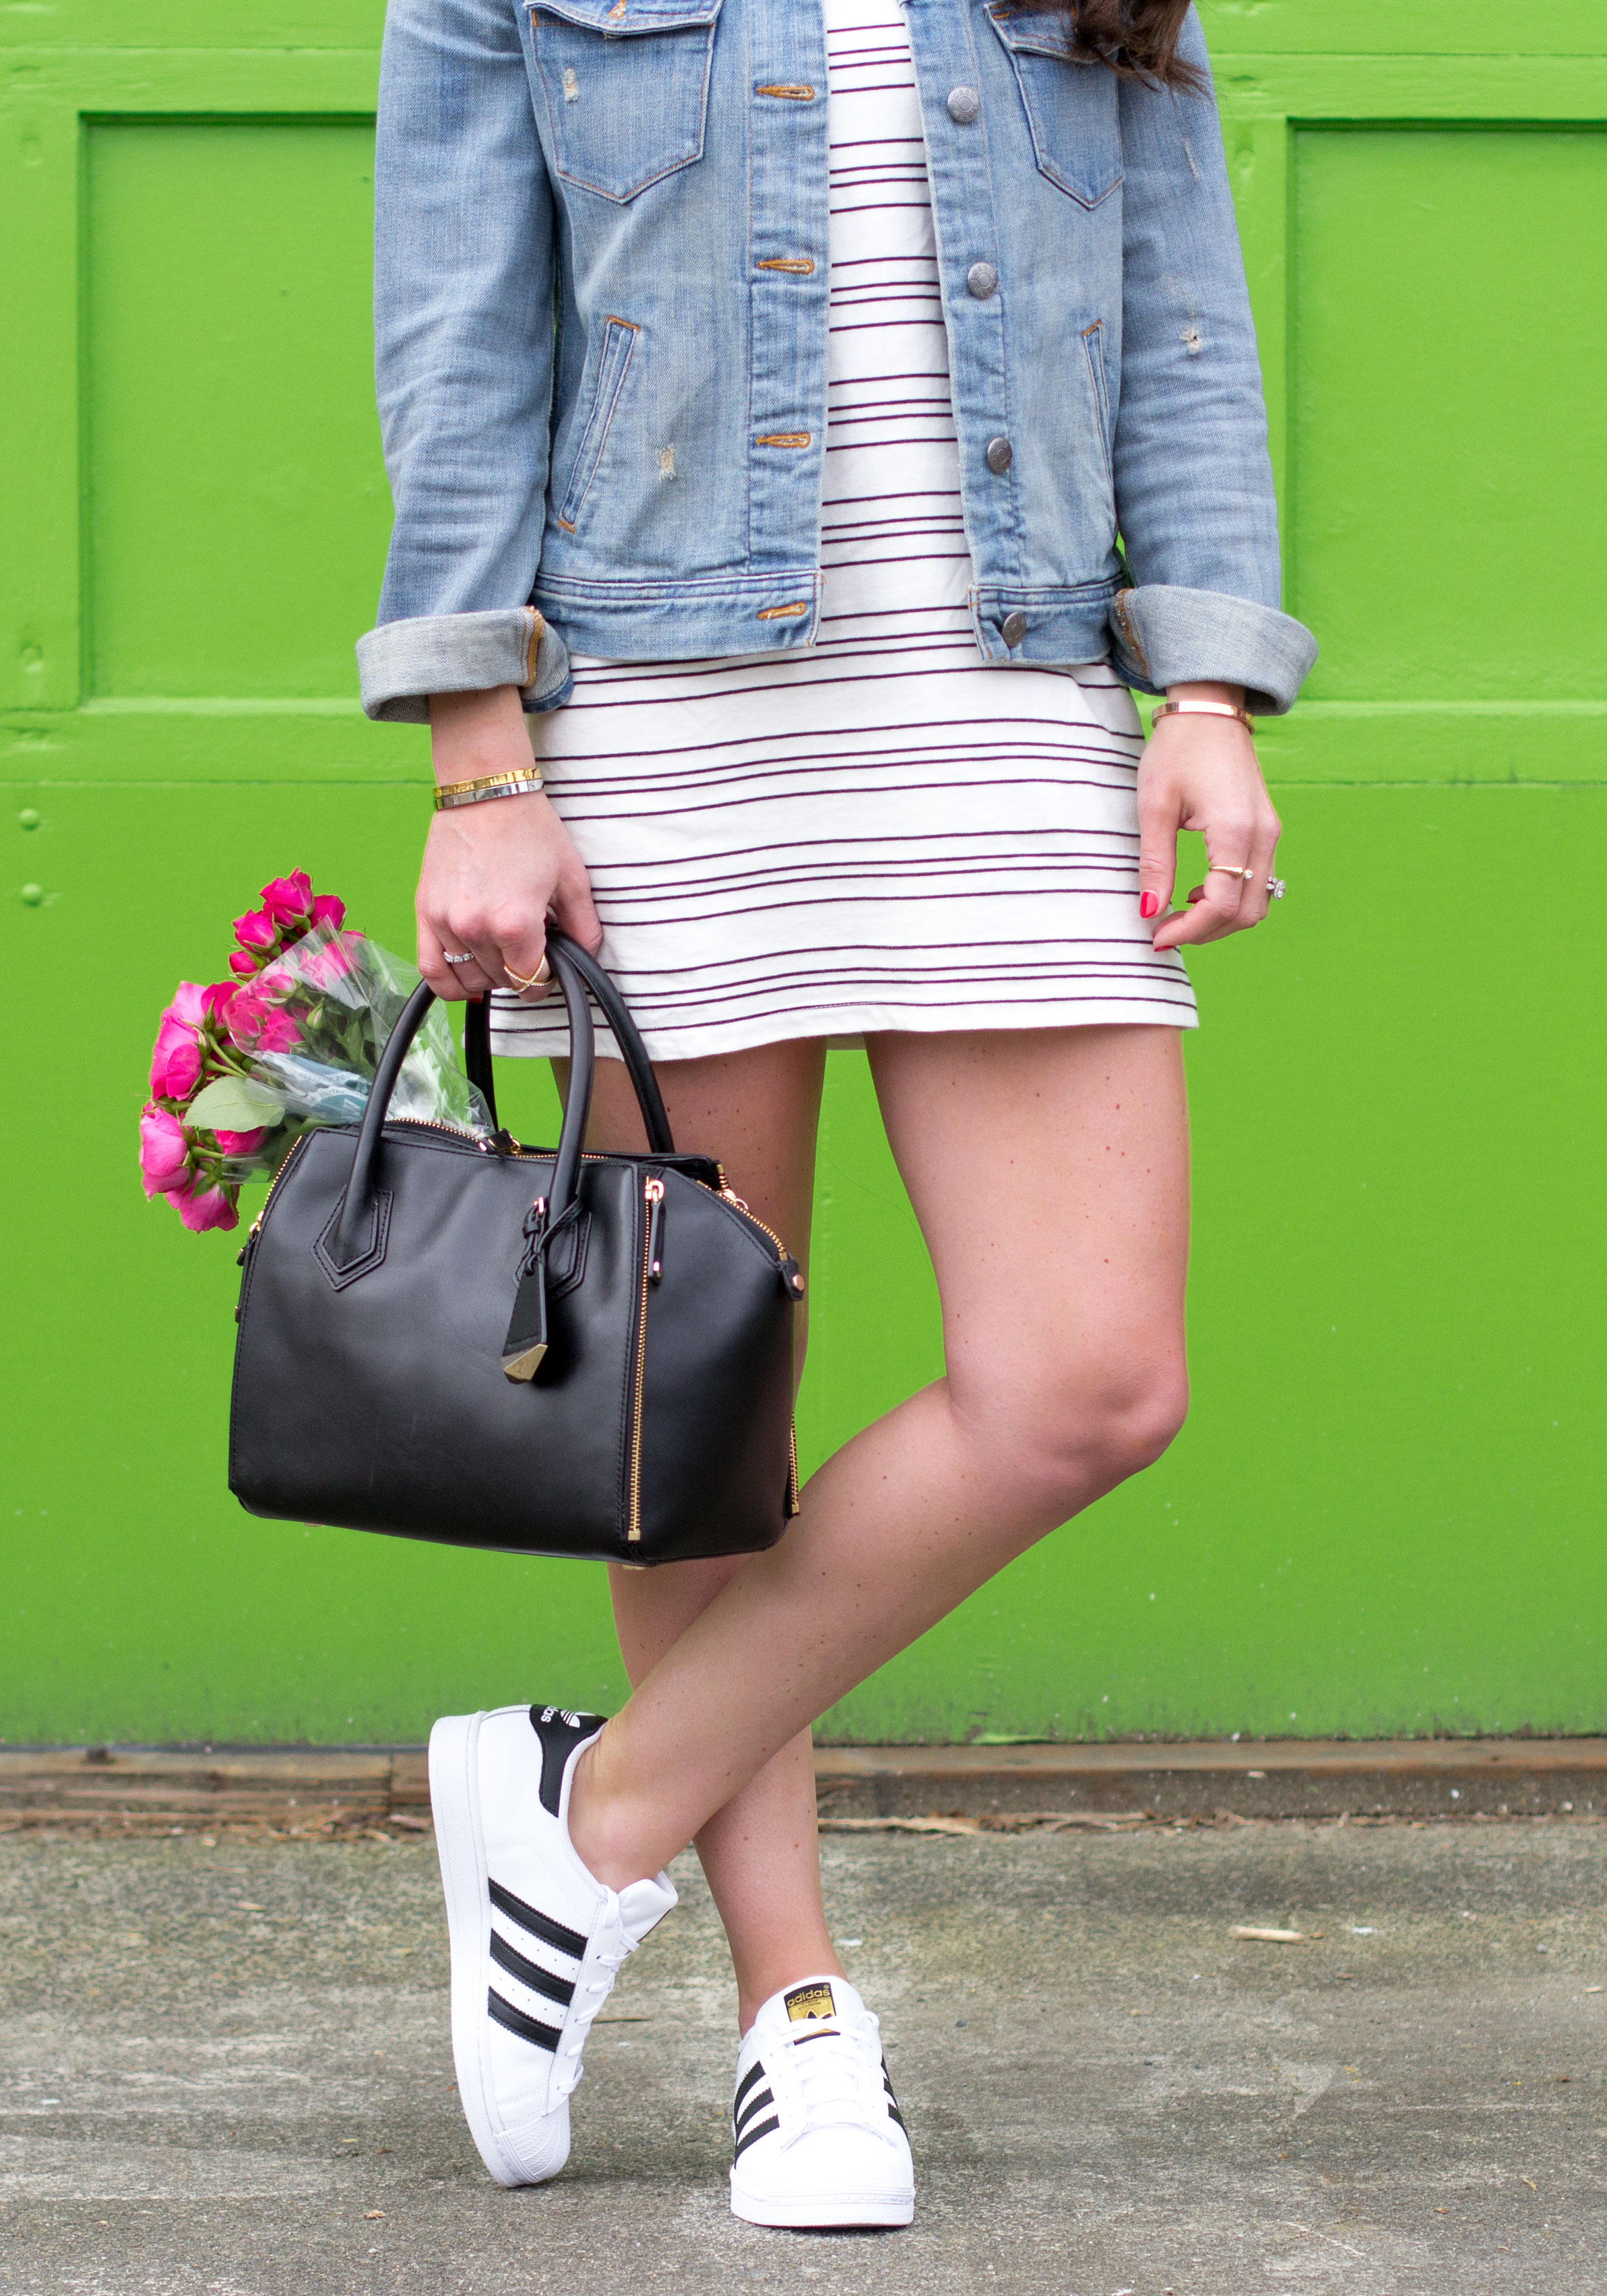 Adidas Superstars with Stripe Dress and J.Crew Denim Jacket.  Casual Weekend Outfit.  How to Wear Sneakers with a Dress.